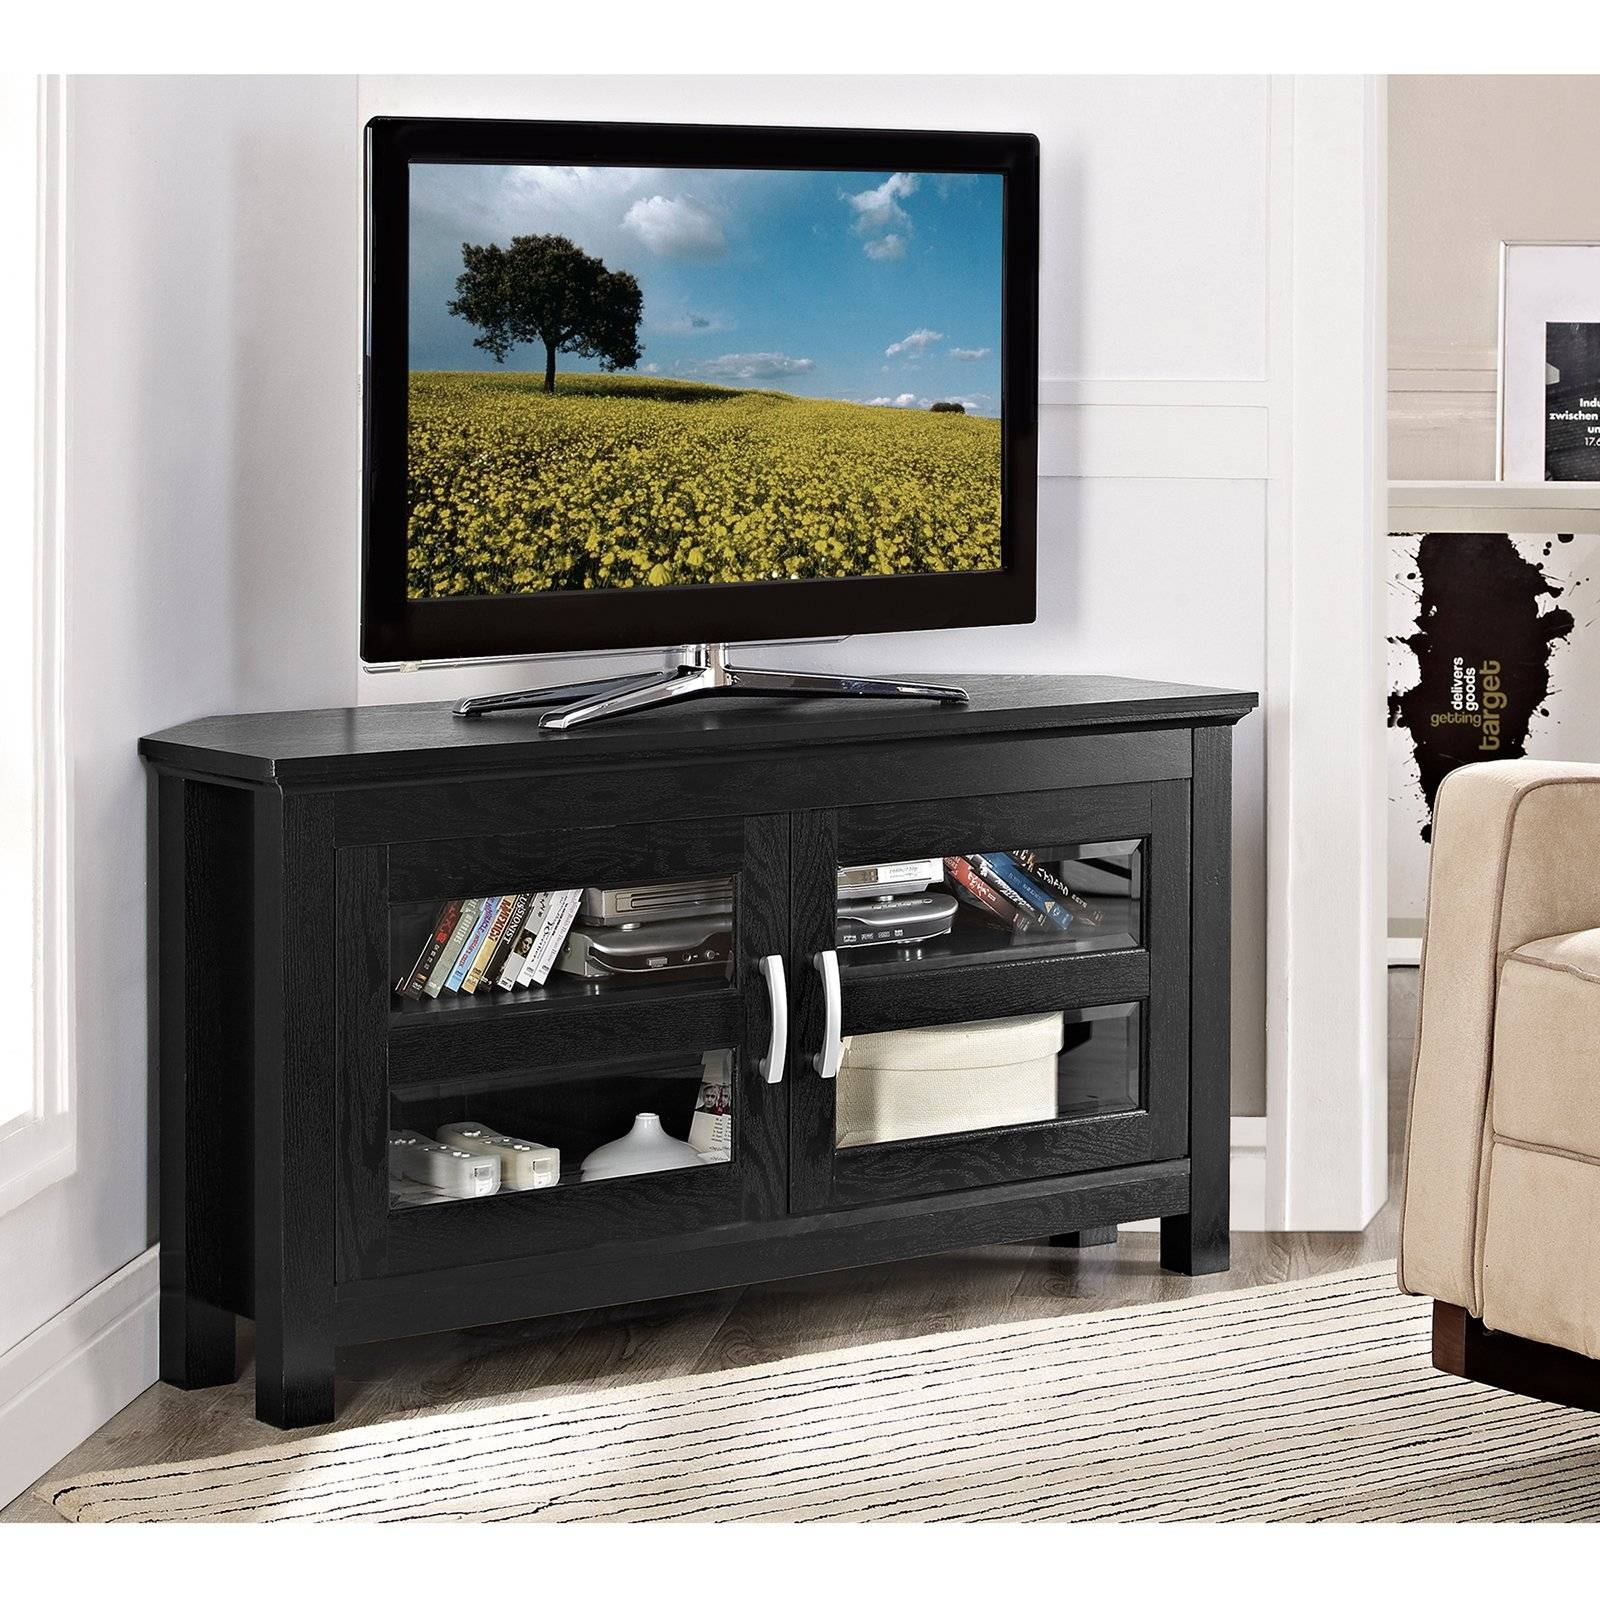 Compton Black Corner Tv Stand – Walmart With Black Corner Tv Cabinets (View 4 of 15)